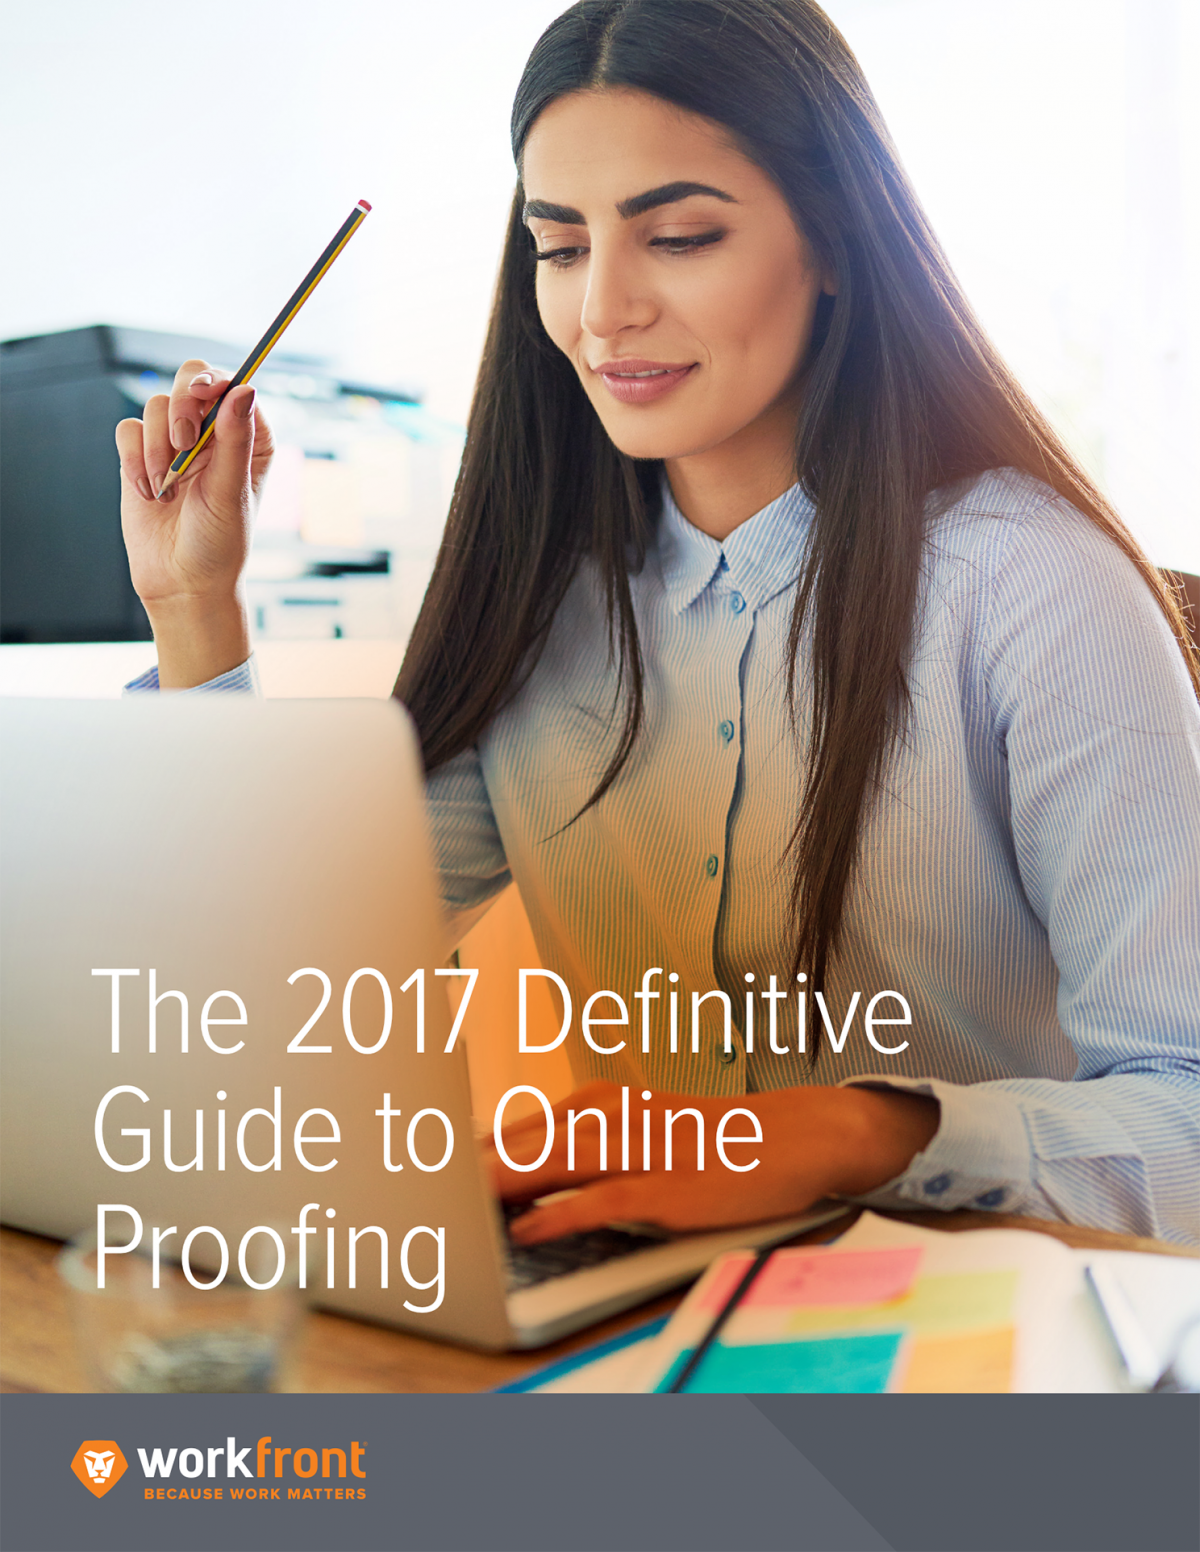 The 2017 Definitive Guide to Online Proofing